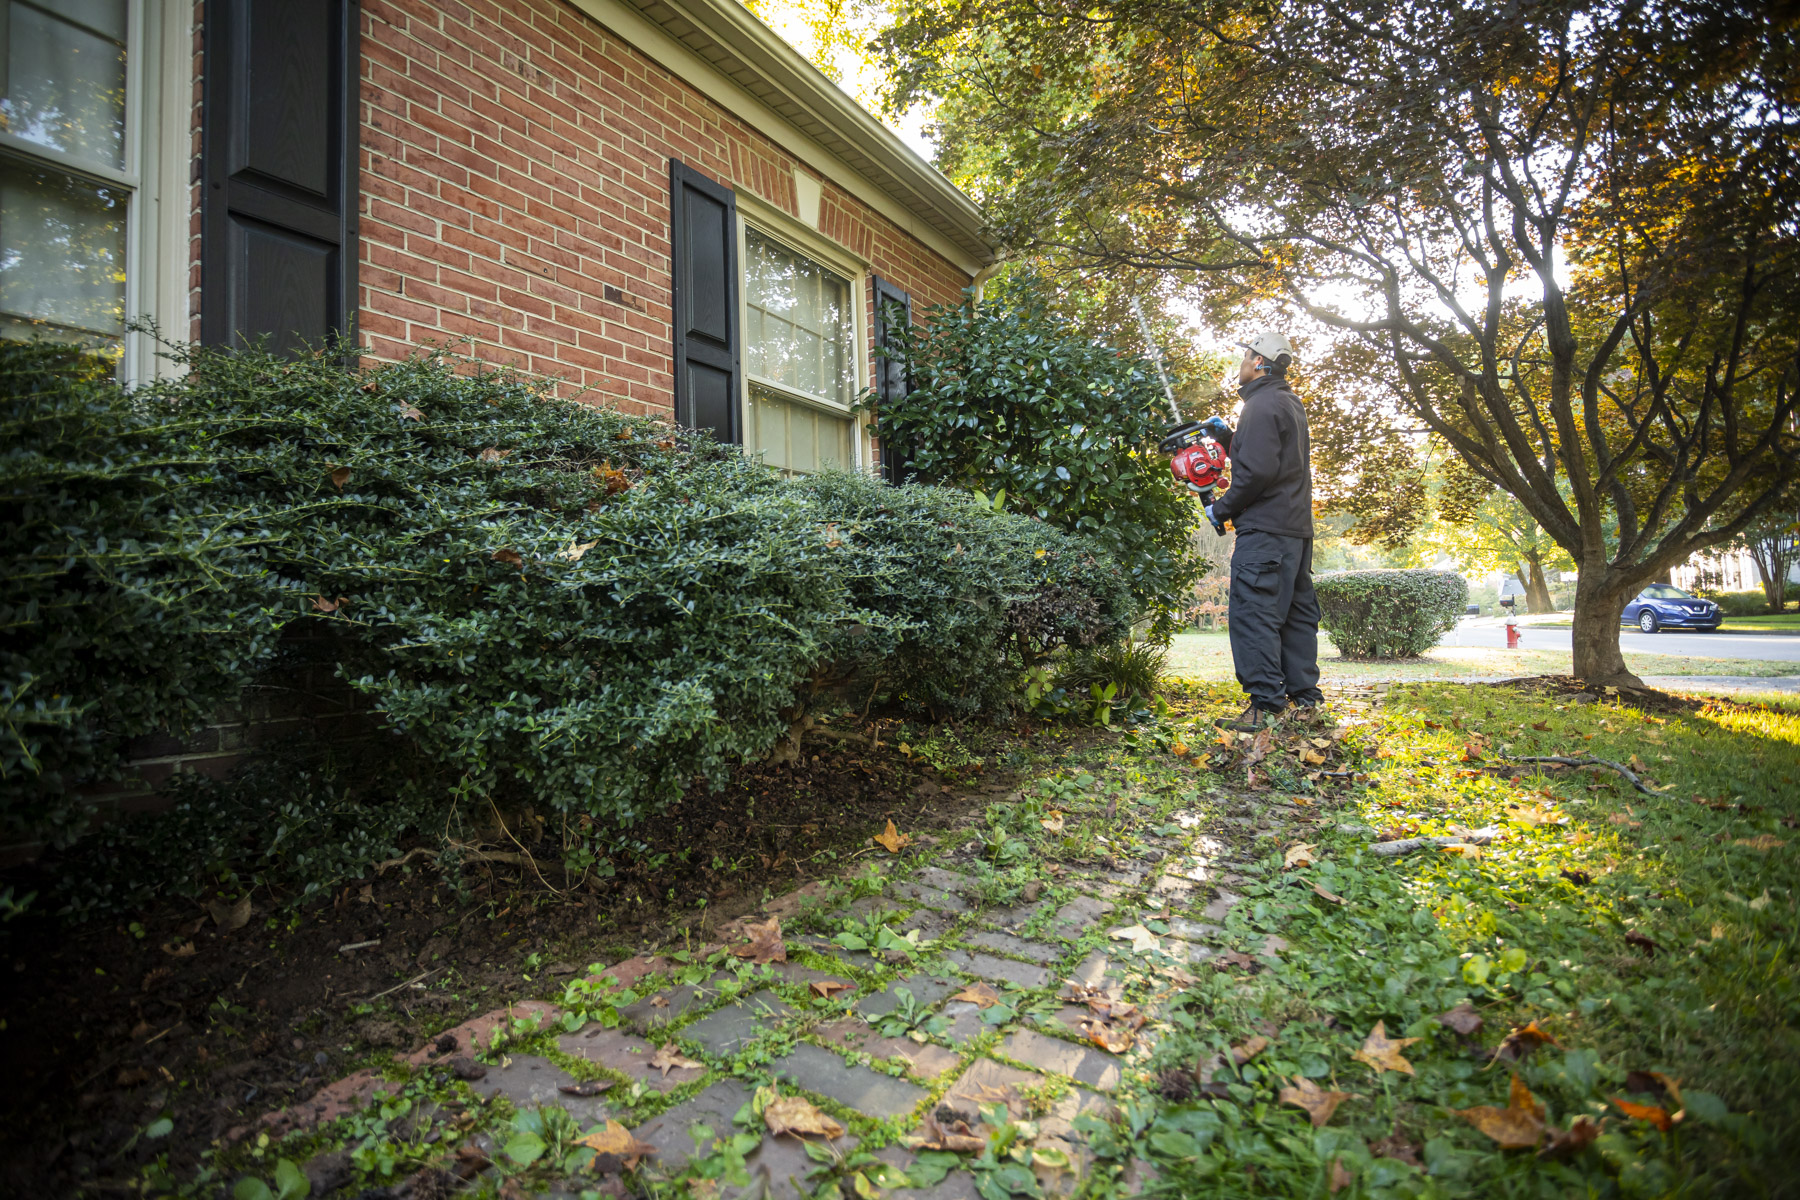 Pruning Shrubs: How to Prune, When to Prune, and The Cost of Pruning Services